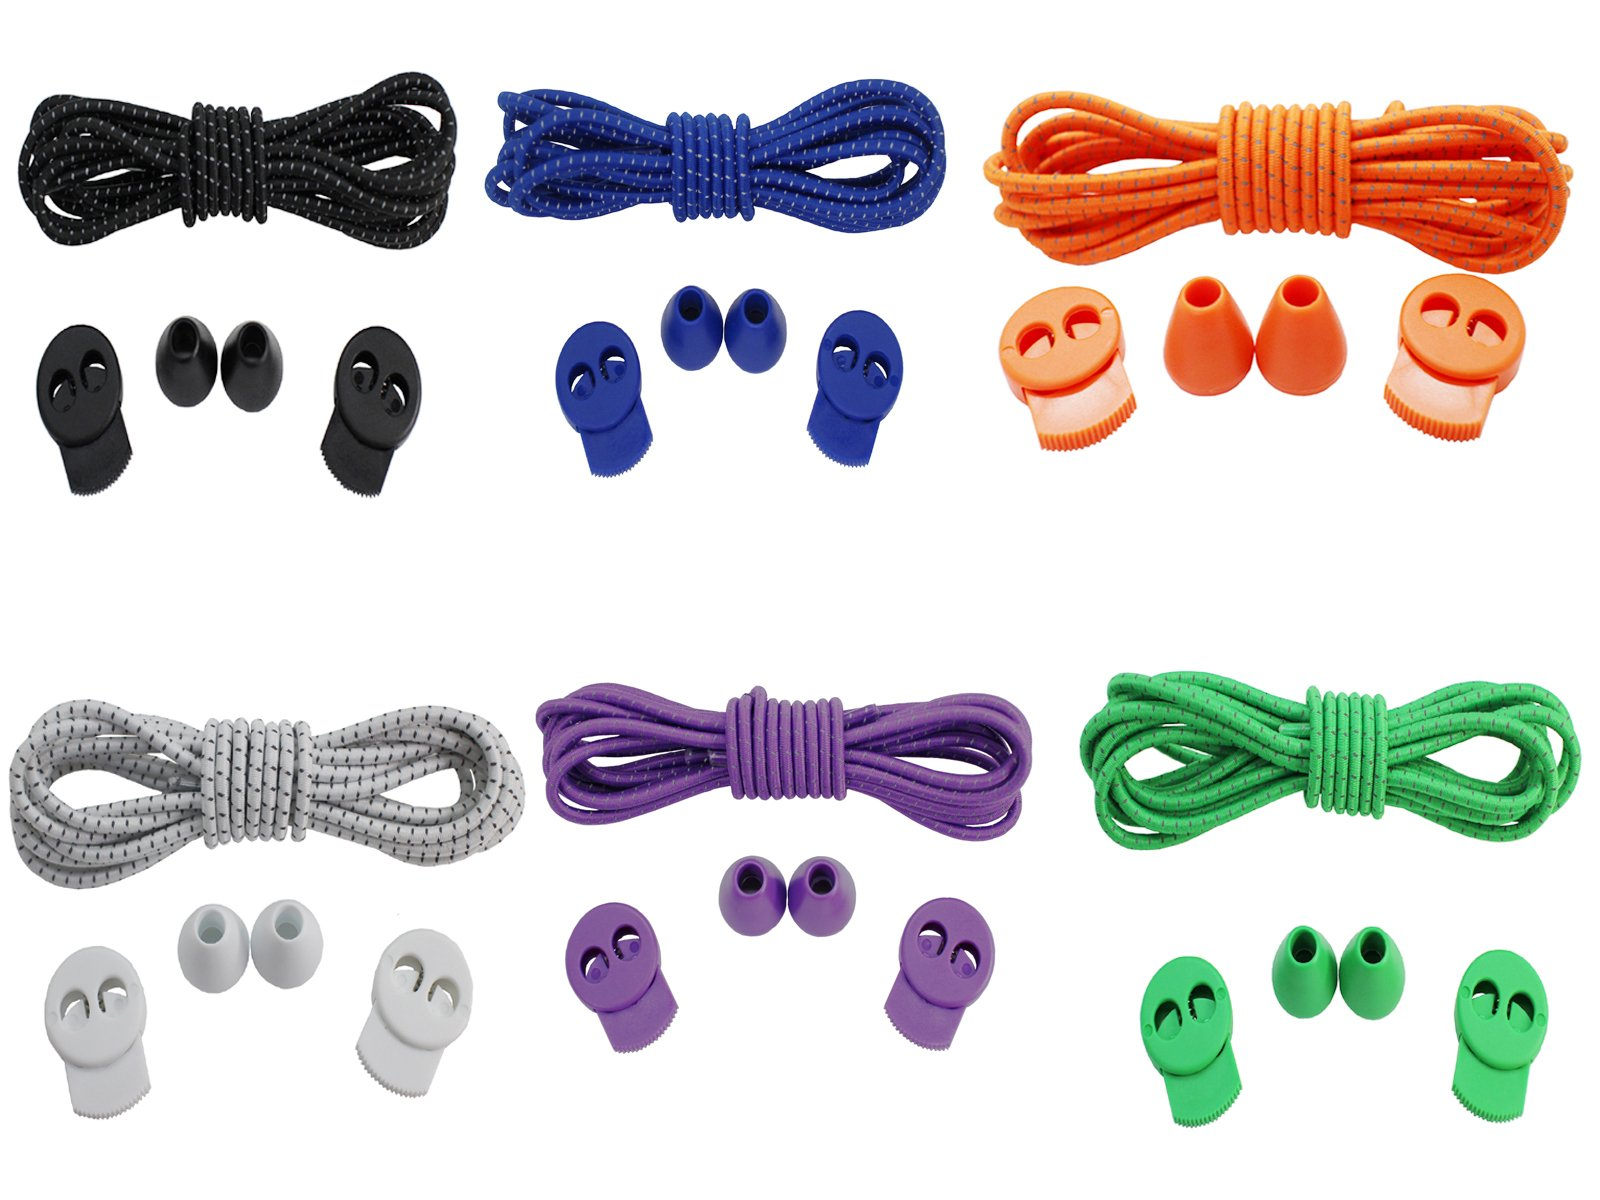 JESEP 6 Pairs of No Tie Elastic Shoelaces for Sports and Outdoor Activities, Elastic and Reflective Laces with Lock (Color 1)